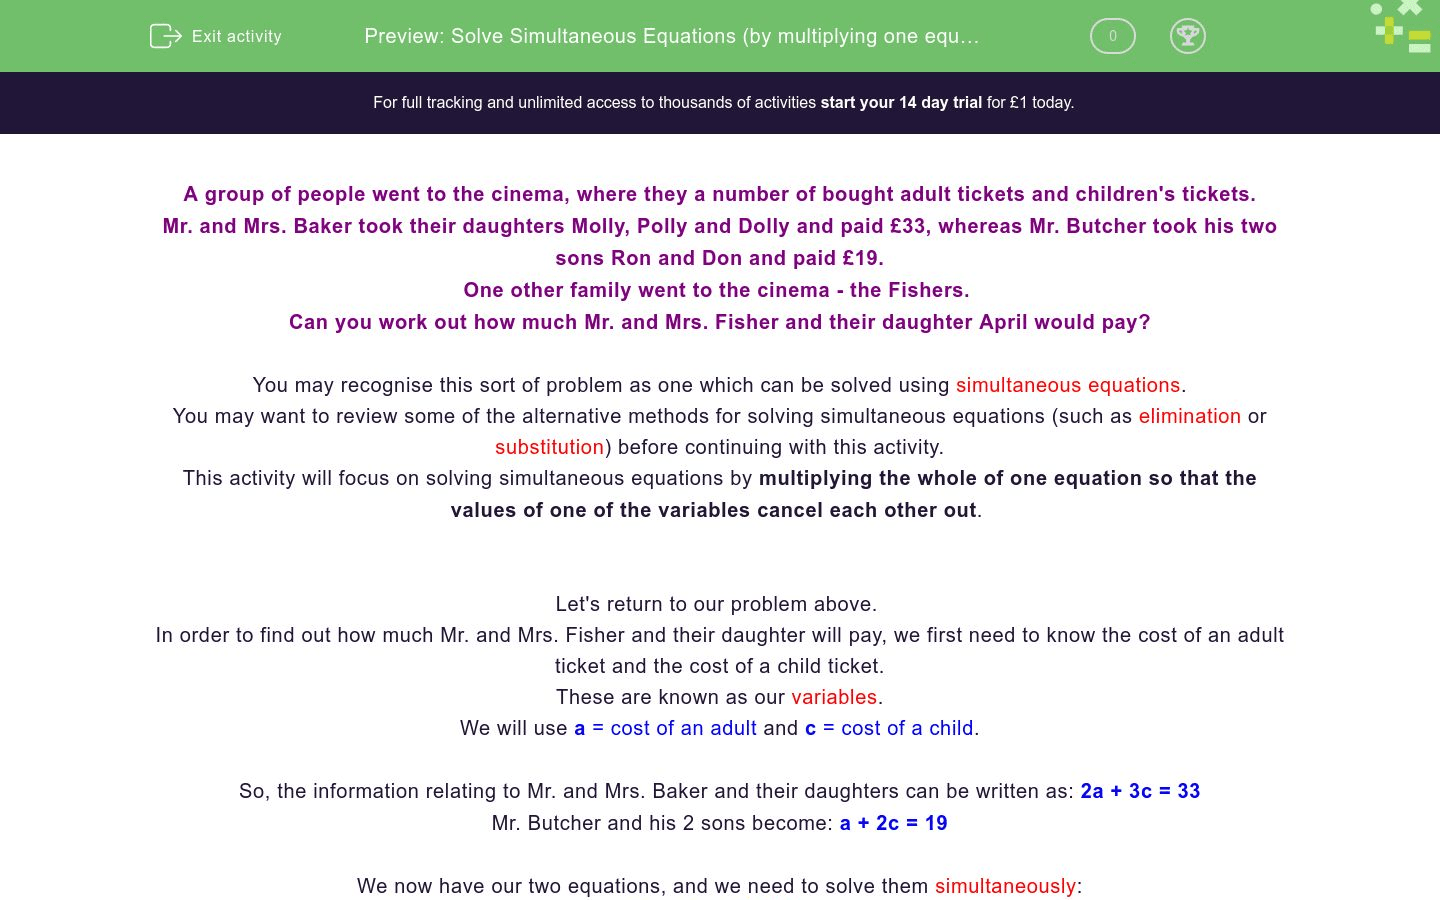 Solve Simultaneous Equations By Multiplying One Equation